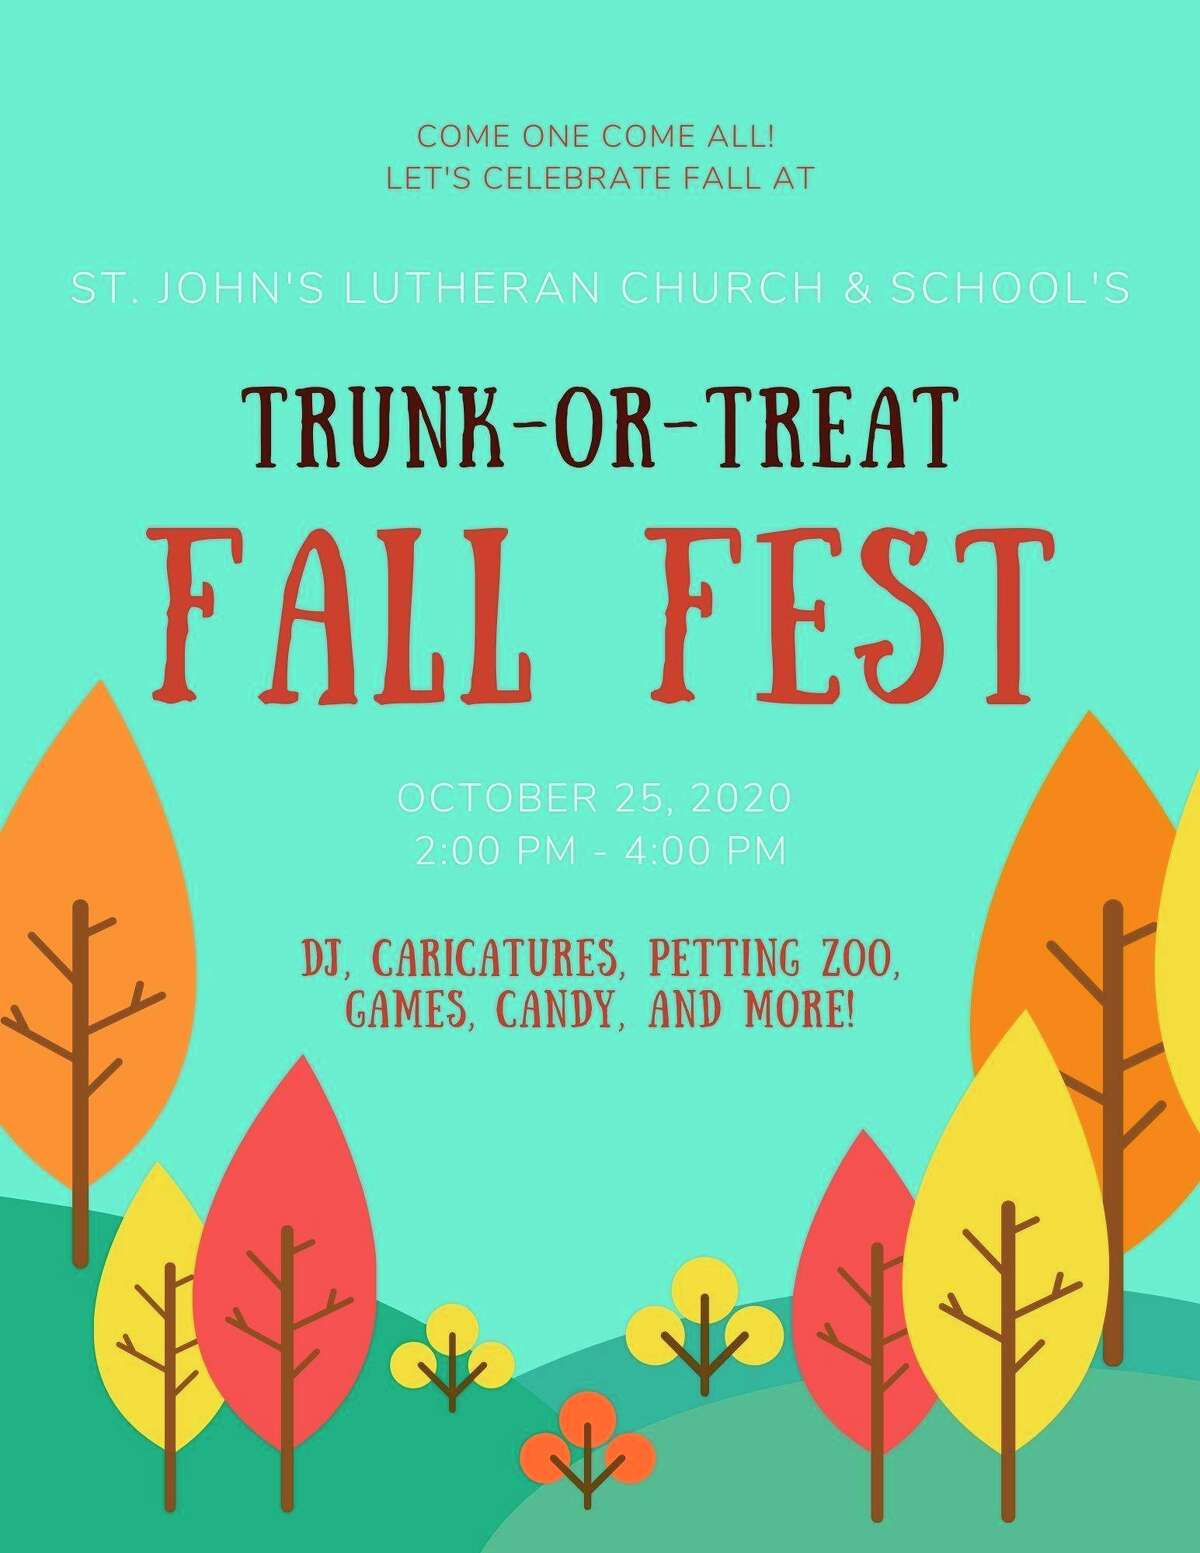 Sunday, Oct. 25: St. John's Lutheran Church is putting a new twist on an old favorite! Trunk-or-Treat Fall Fest will take place on from 2-4 p.m. in the parking lot of St. John's. (Photo provided/St. John's Facebook)